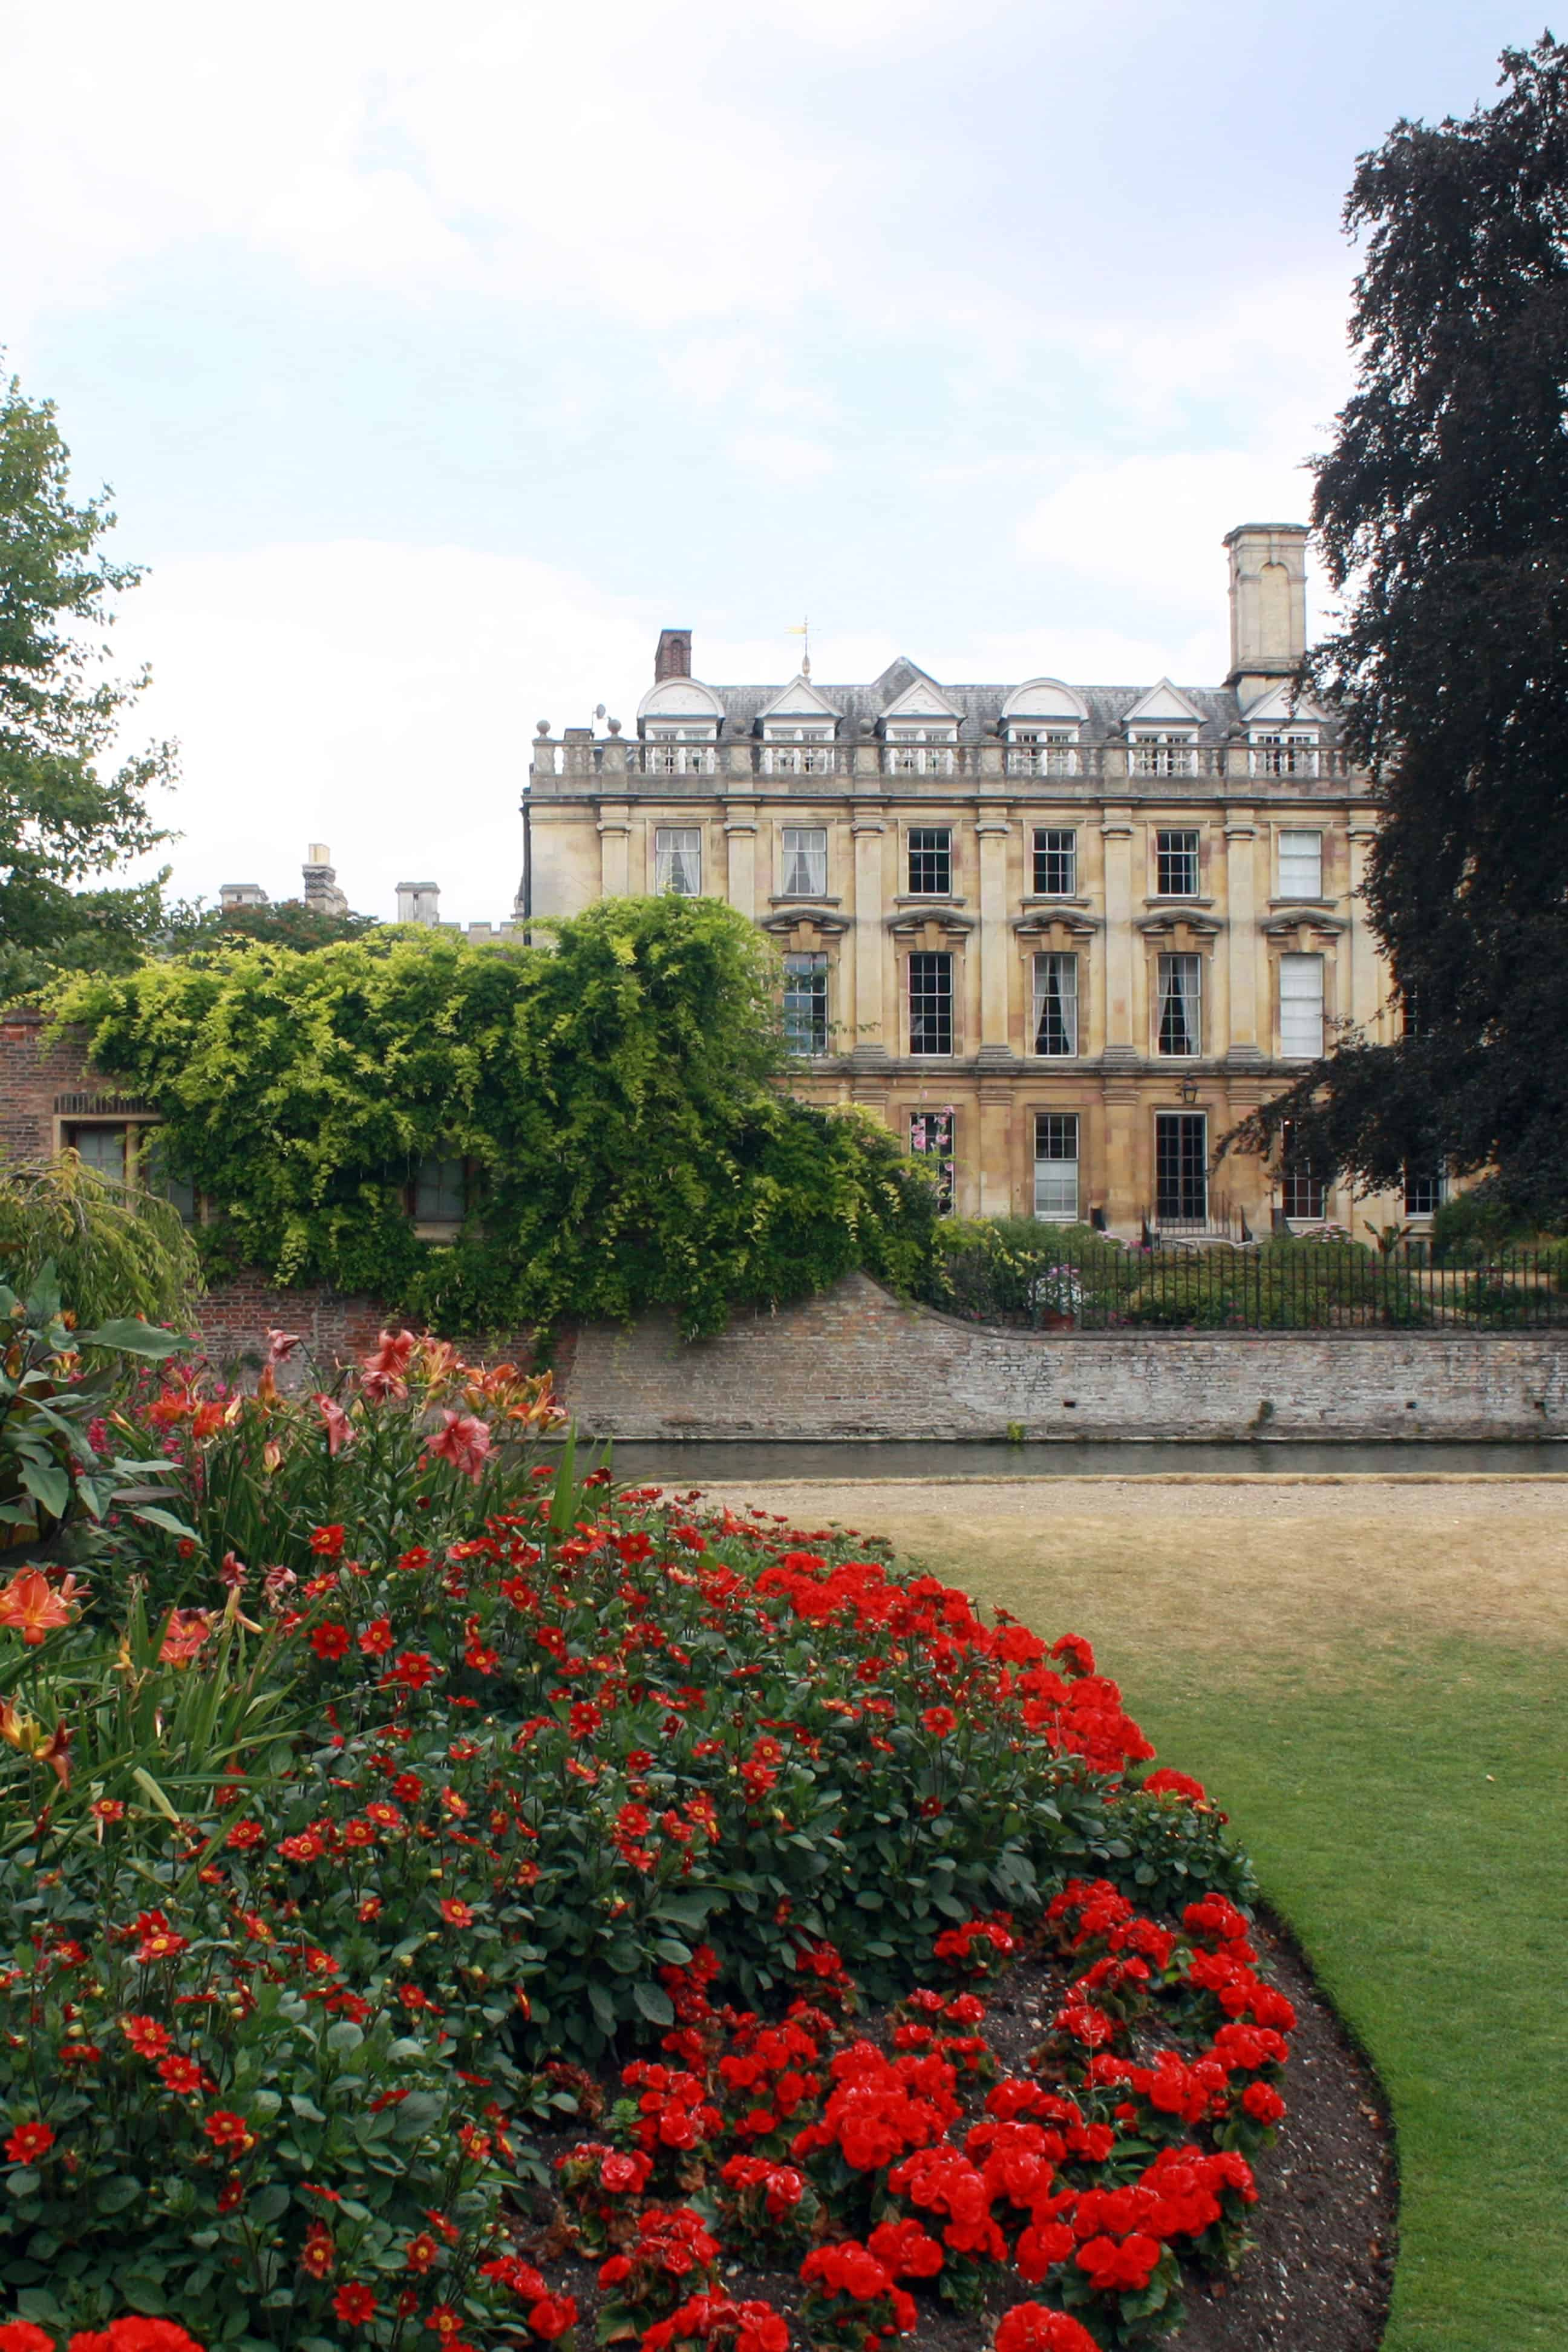 Clare College Fellows' Garden